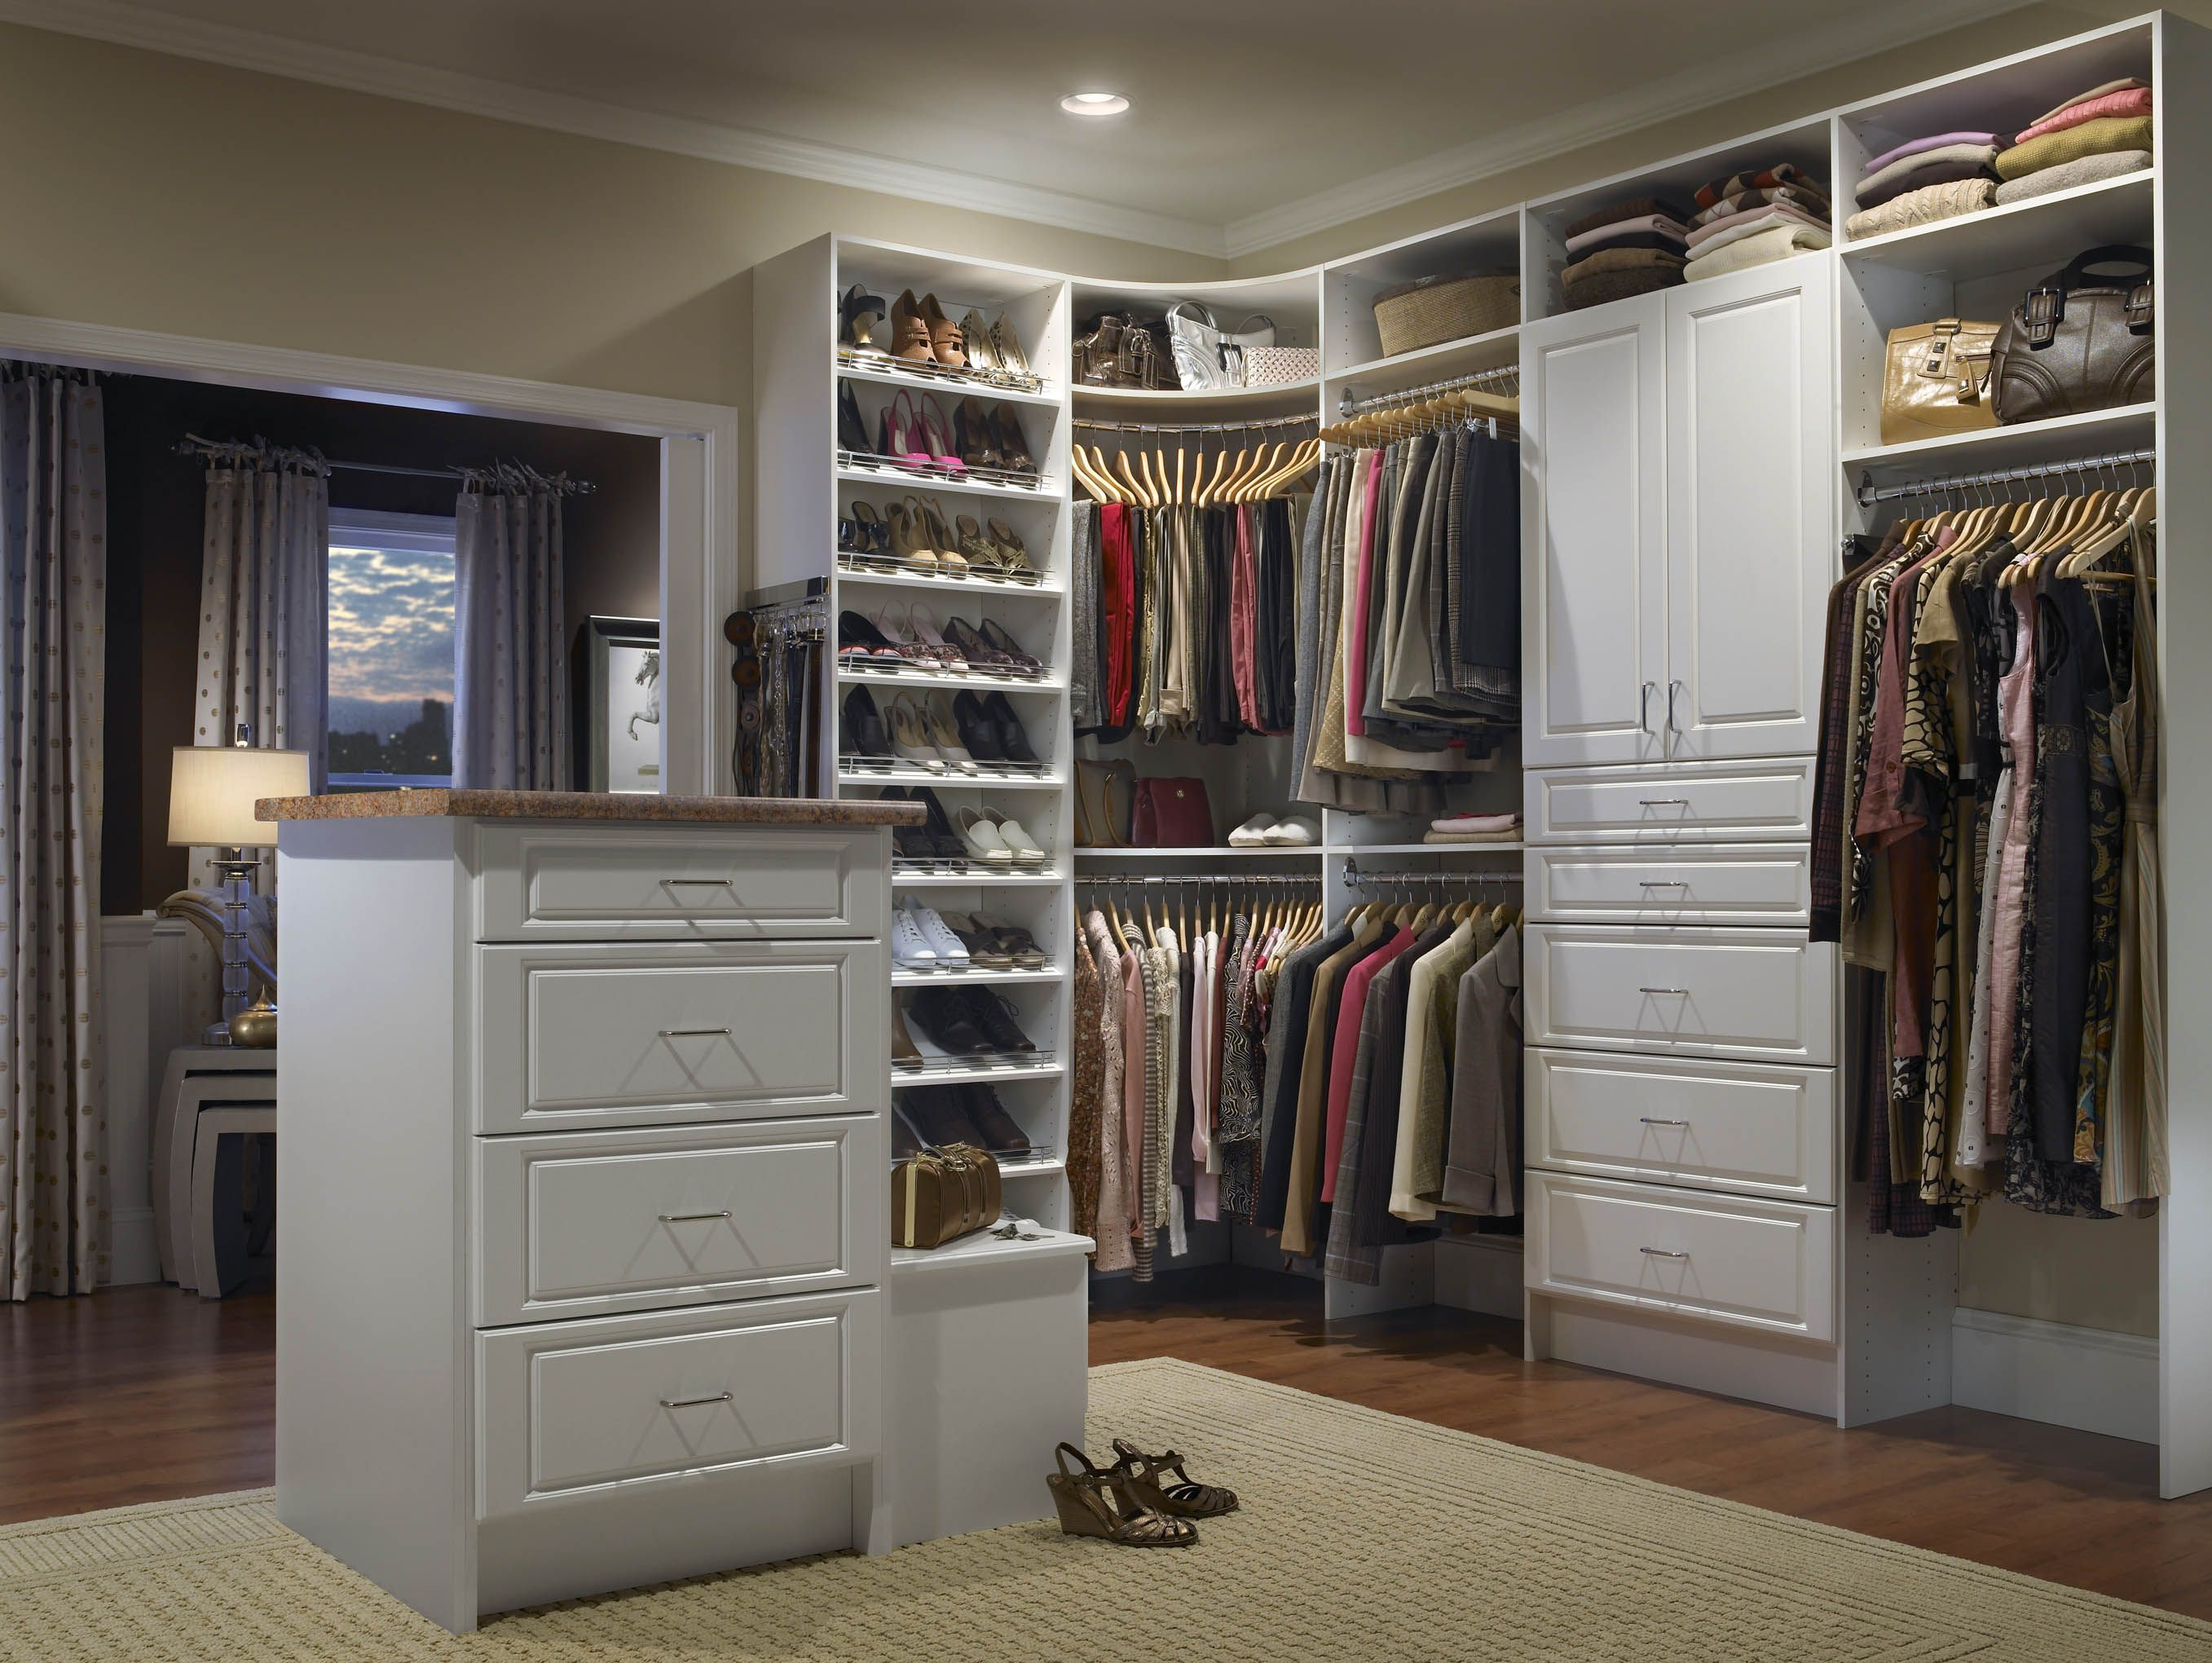 Walk In Closet Design Ideas Plans collect this idea walk in closet for men masculine closet design 6 17 Best Images About My Walk In Closet Ideas On Pinterest Closet Organization Walk